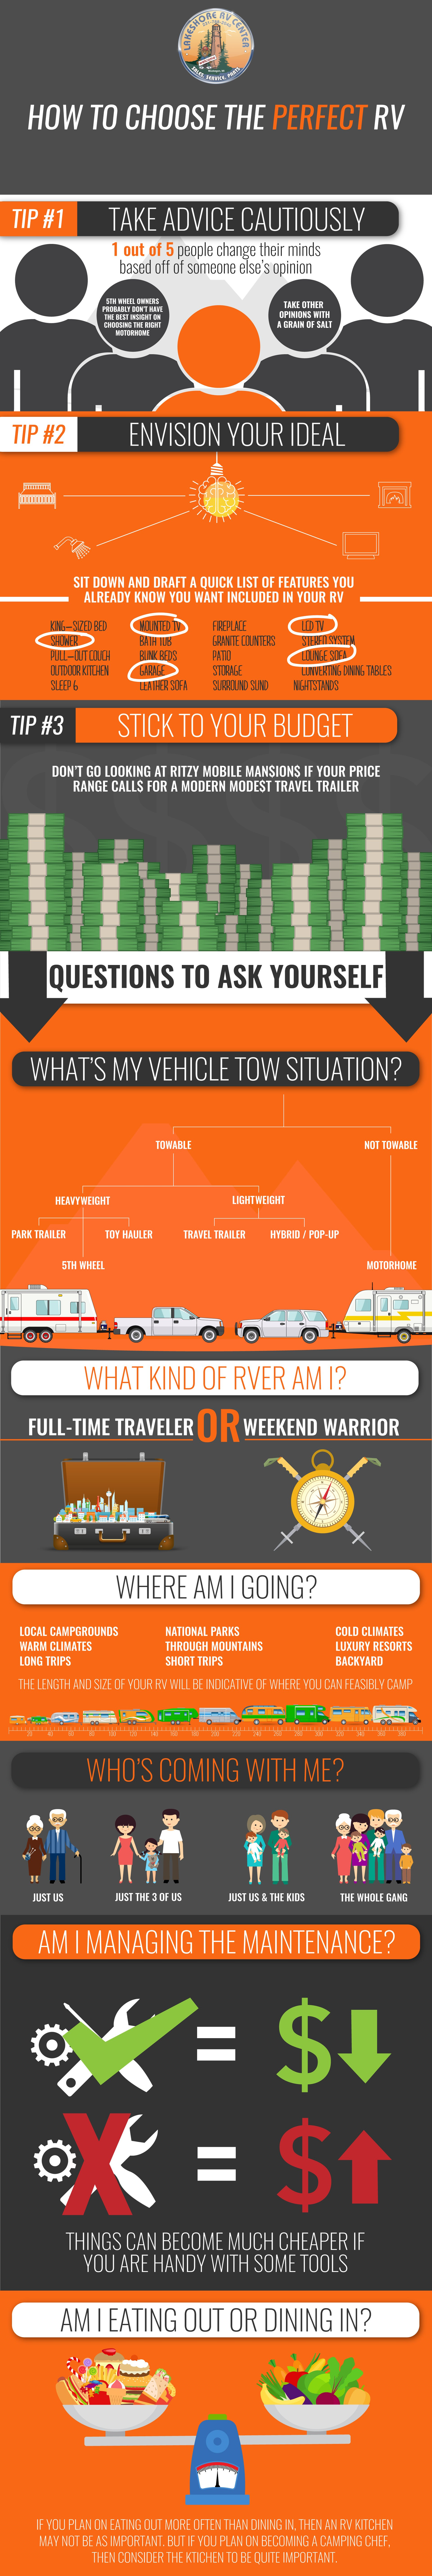 choosing the perfect rv infographic